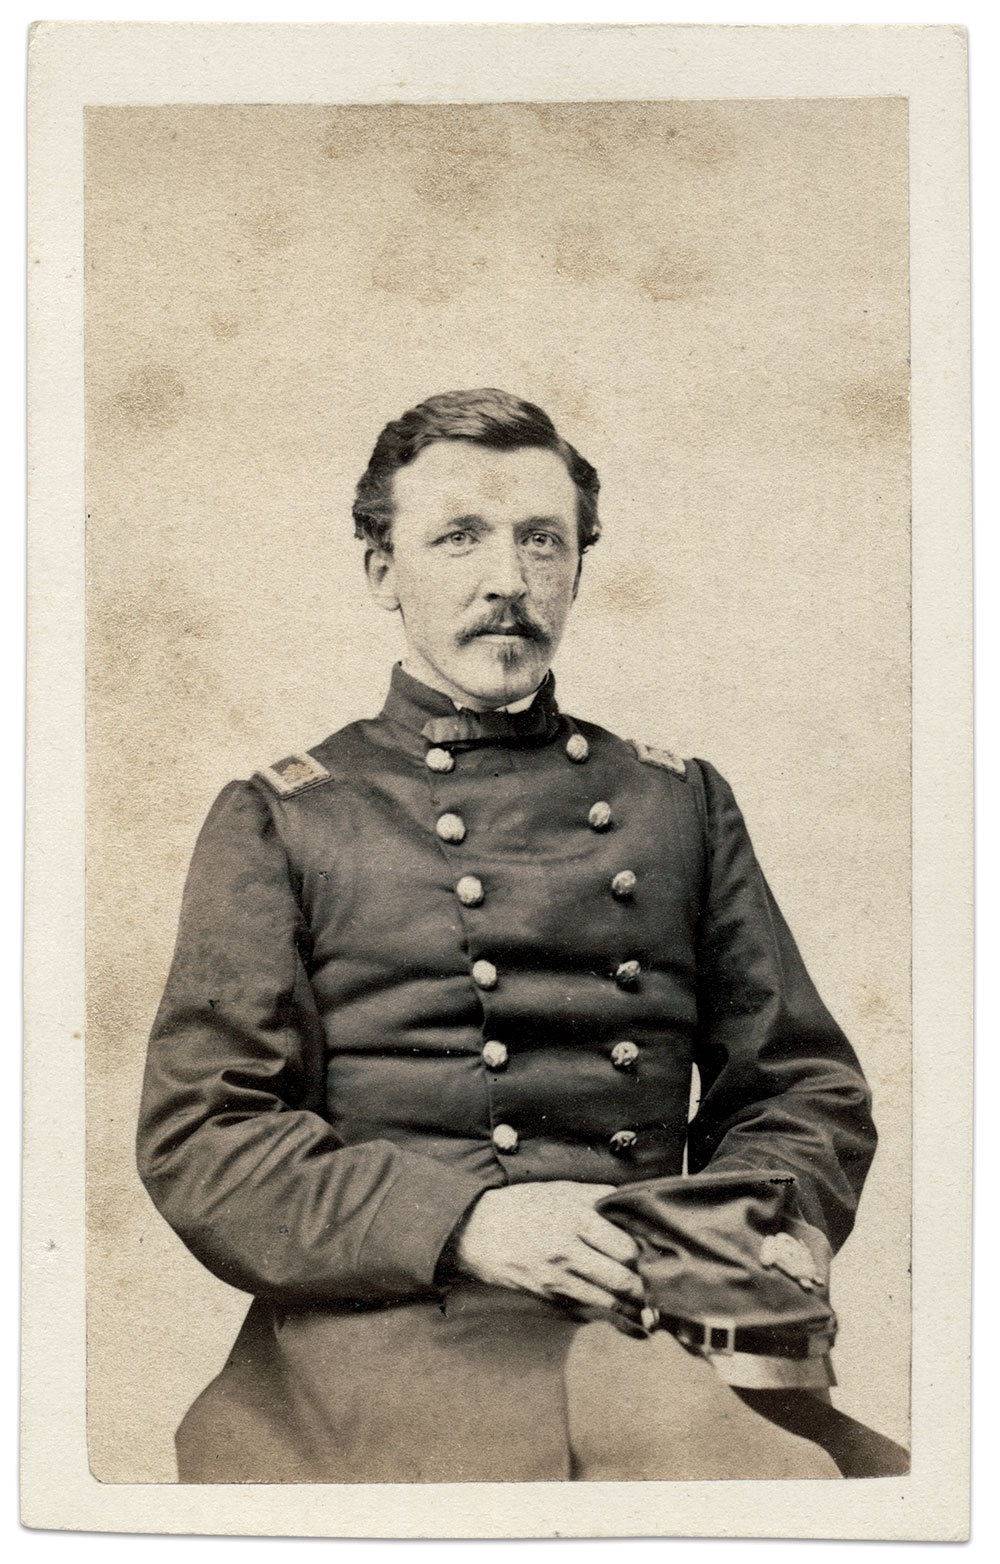 Carte de visite by James Wallace Black of Boston, Mass. Brian Boeve Collection.